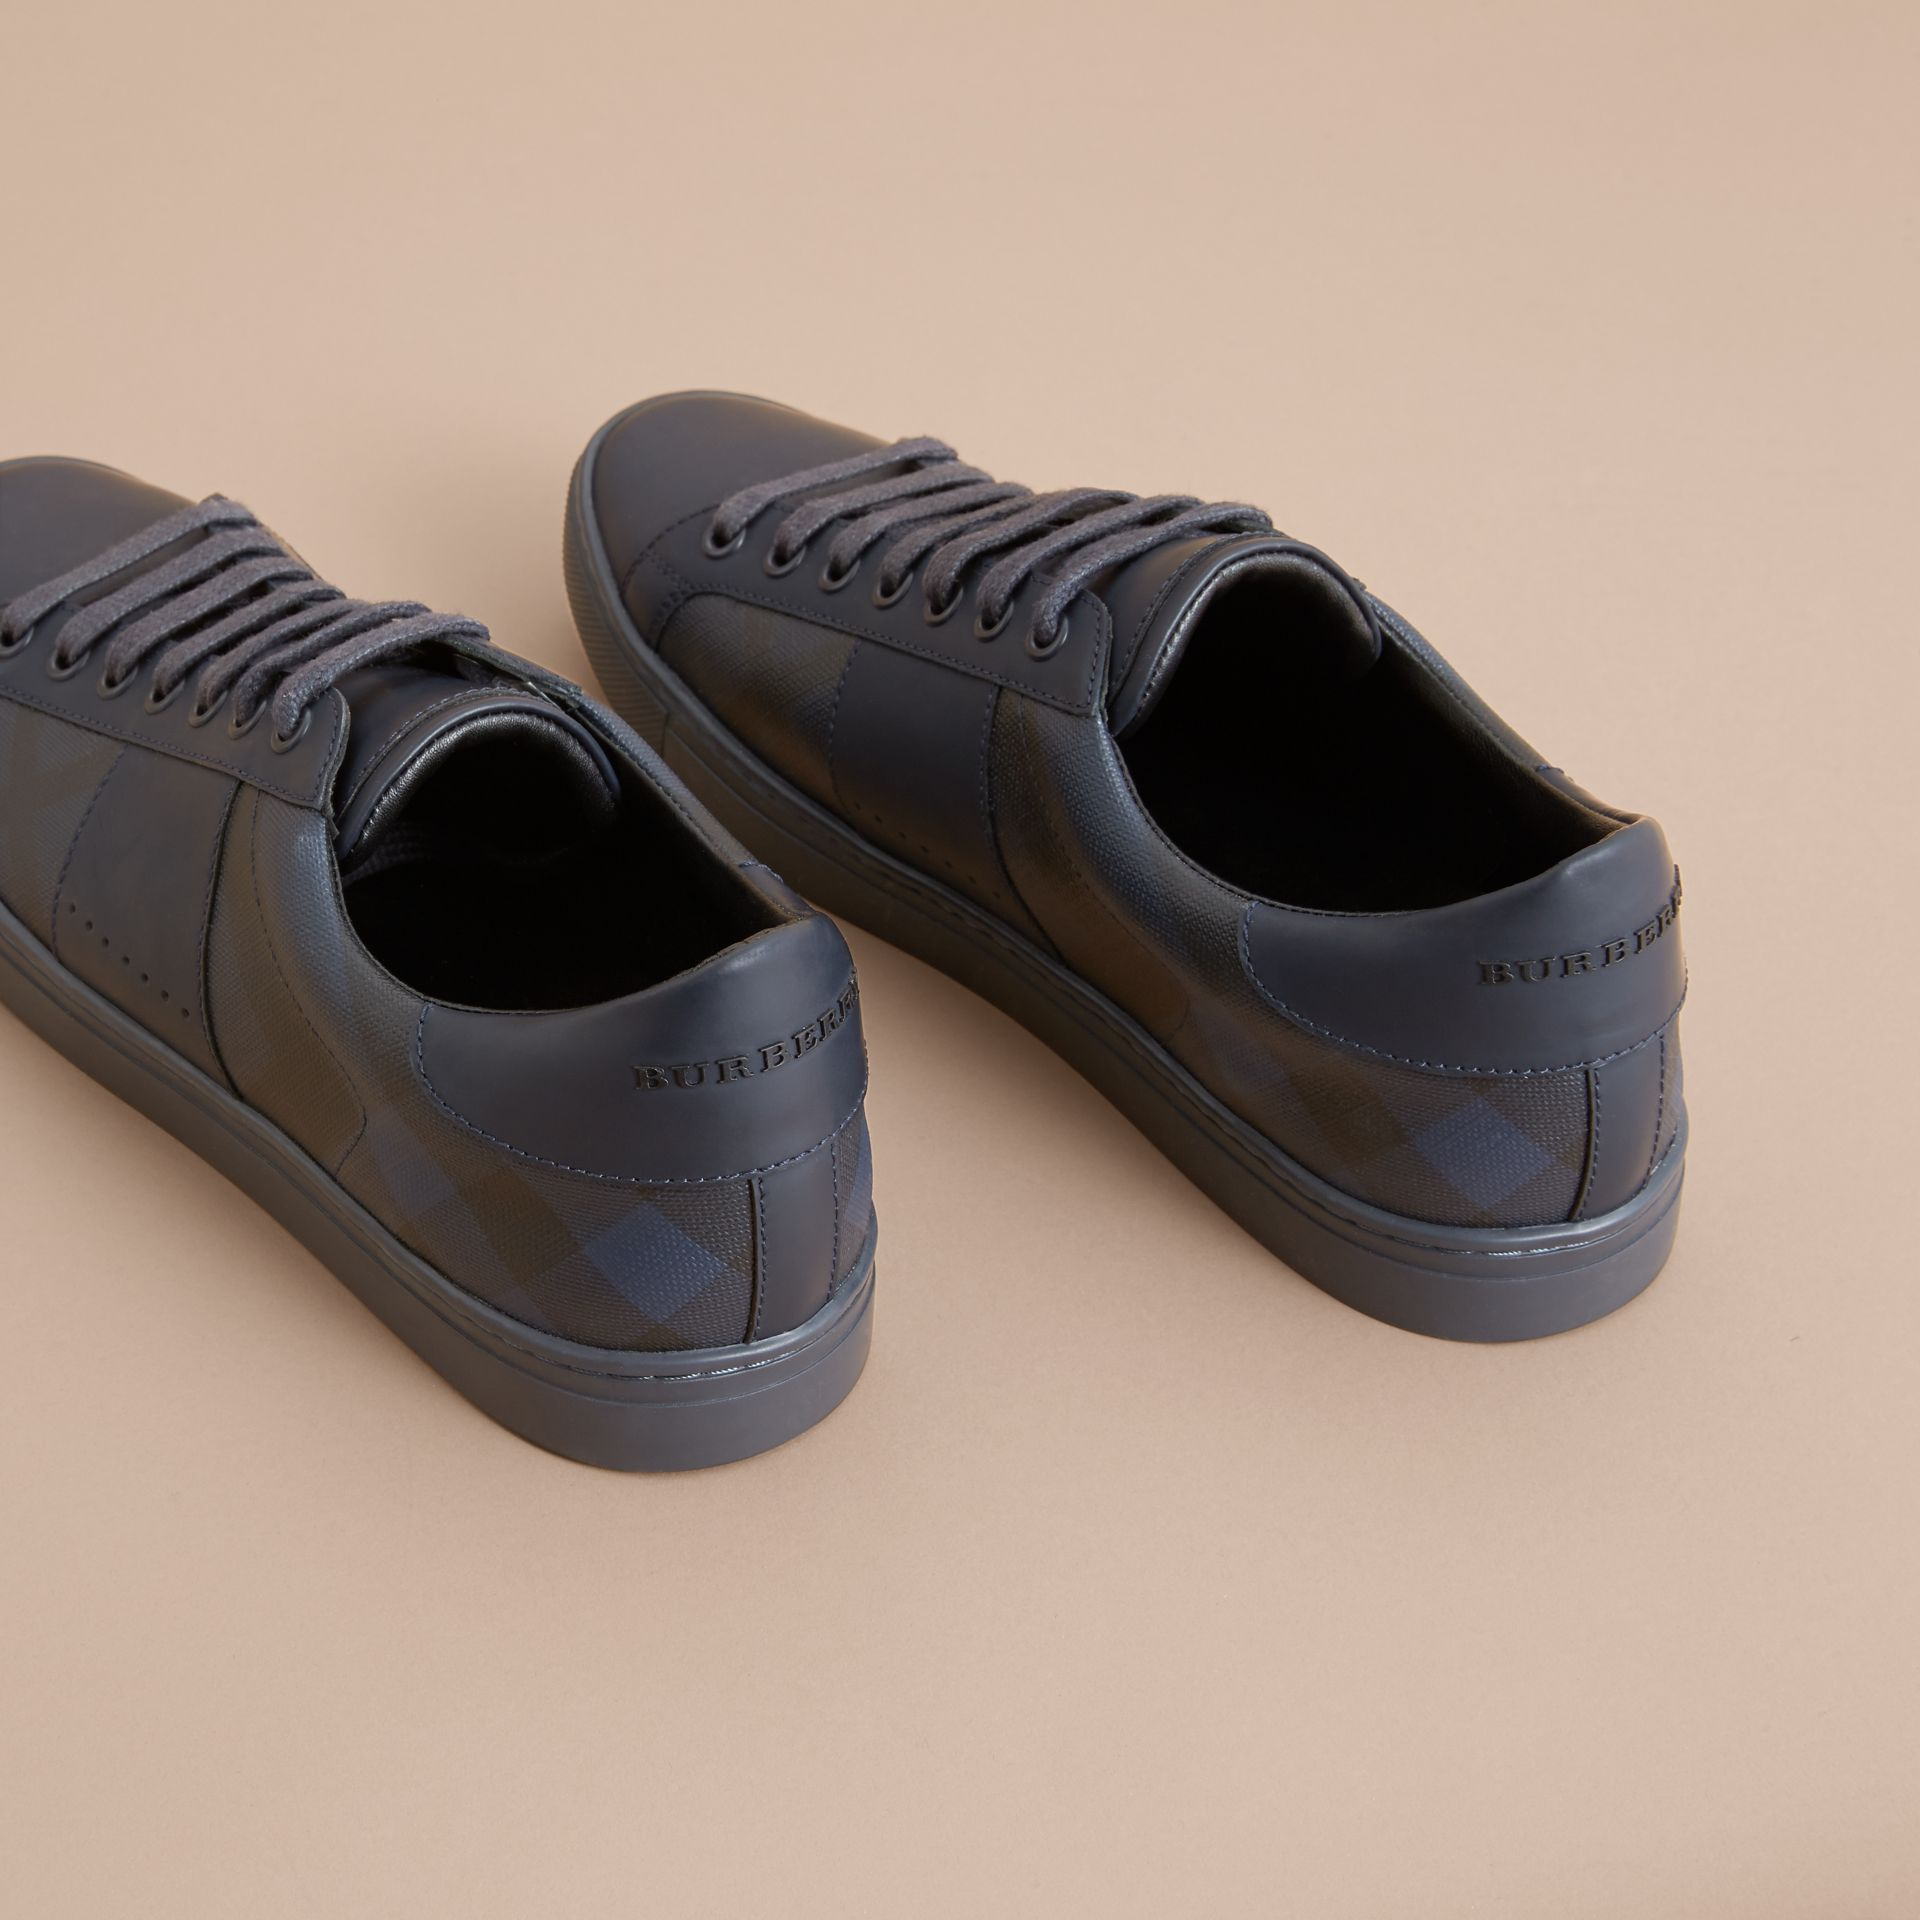 London Check and Leather Sneakers in Navy - Men | Burberry - gallery image 3